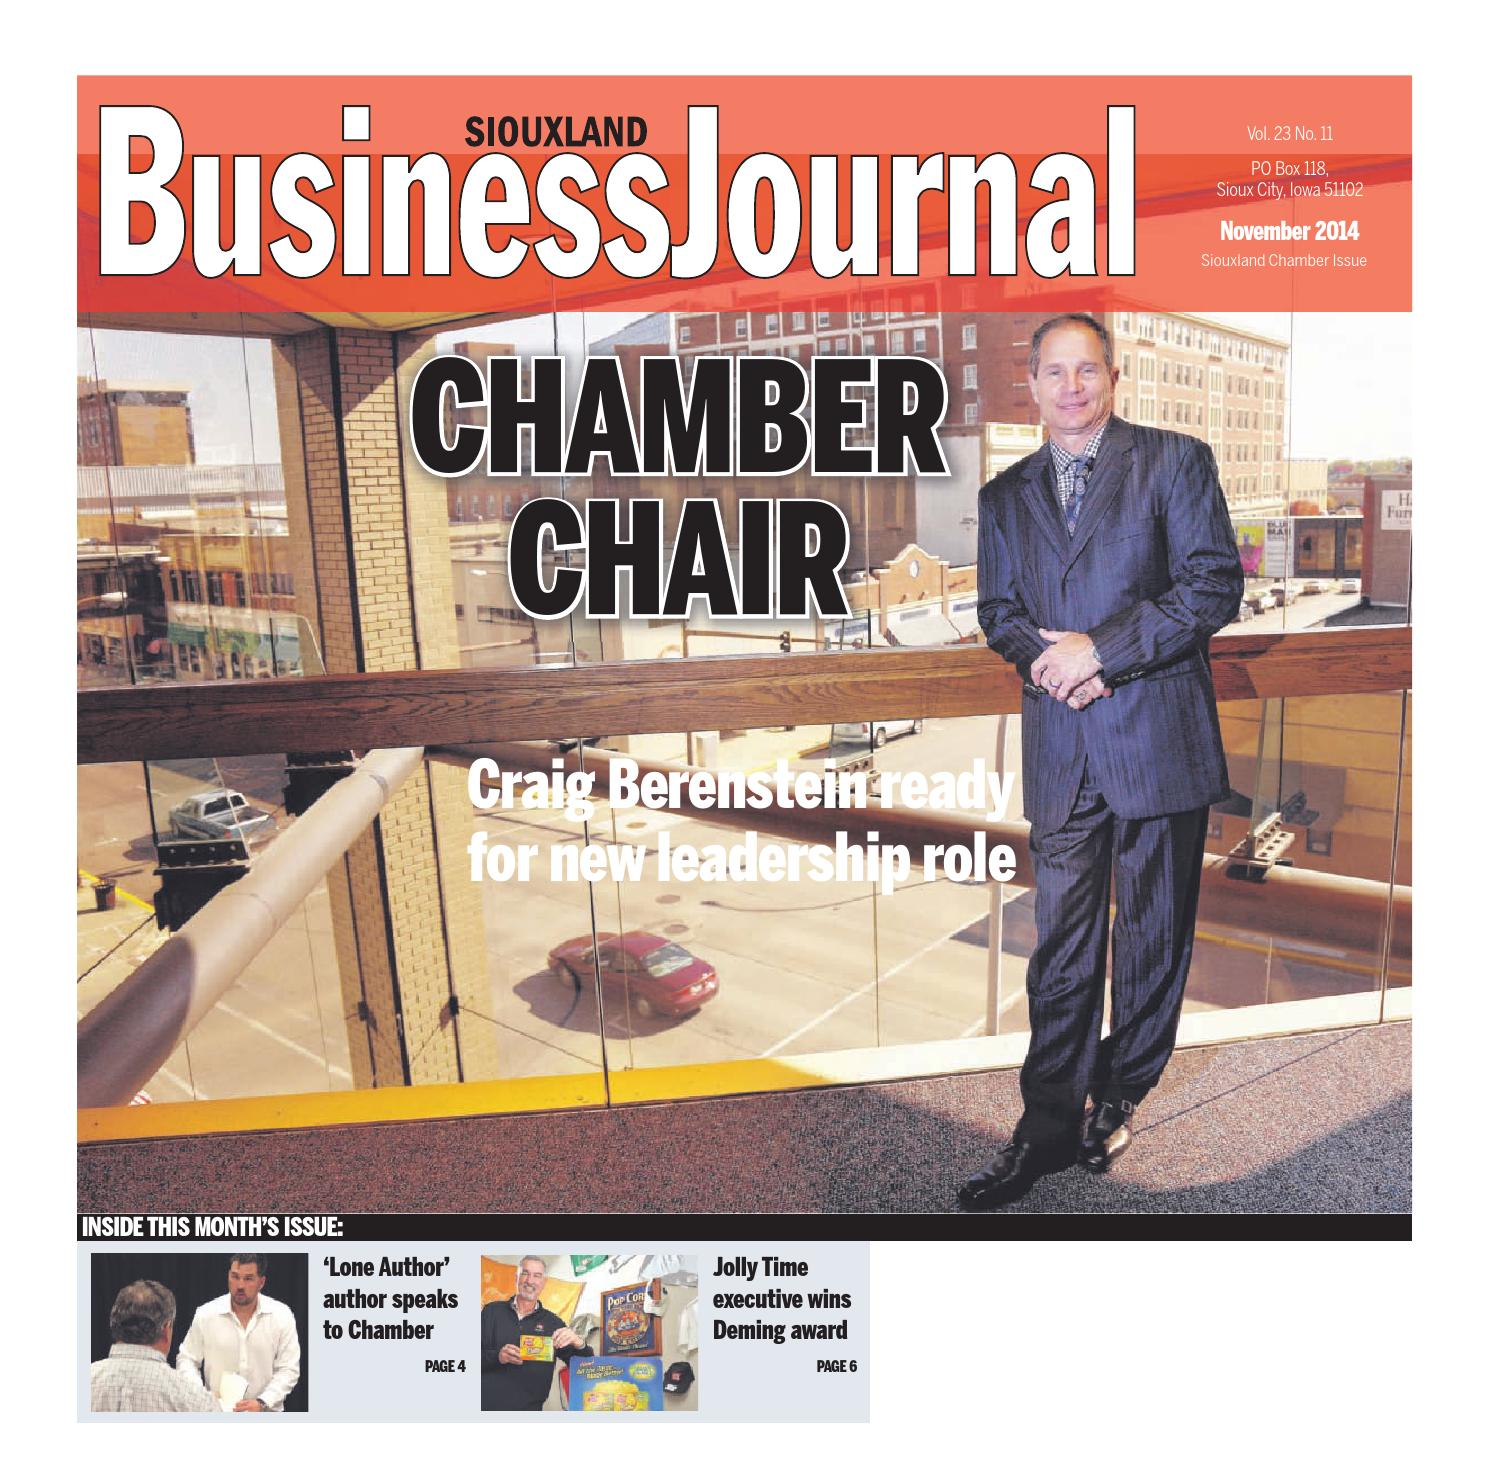 siouxland business journal november 2014 by sioux city journal